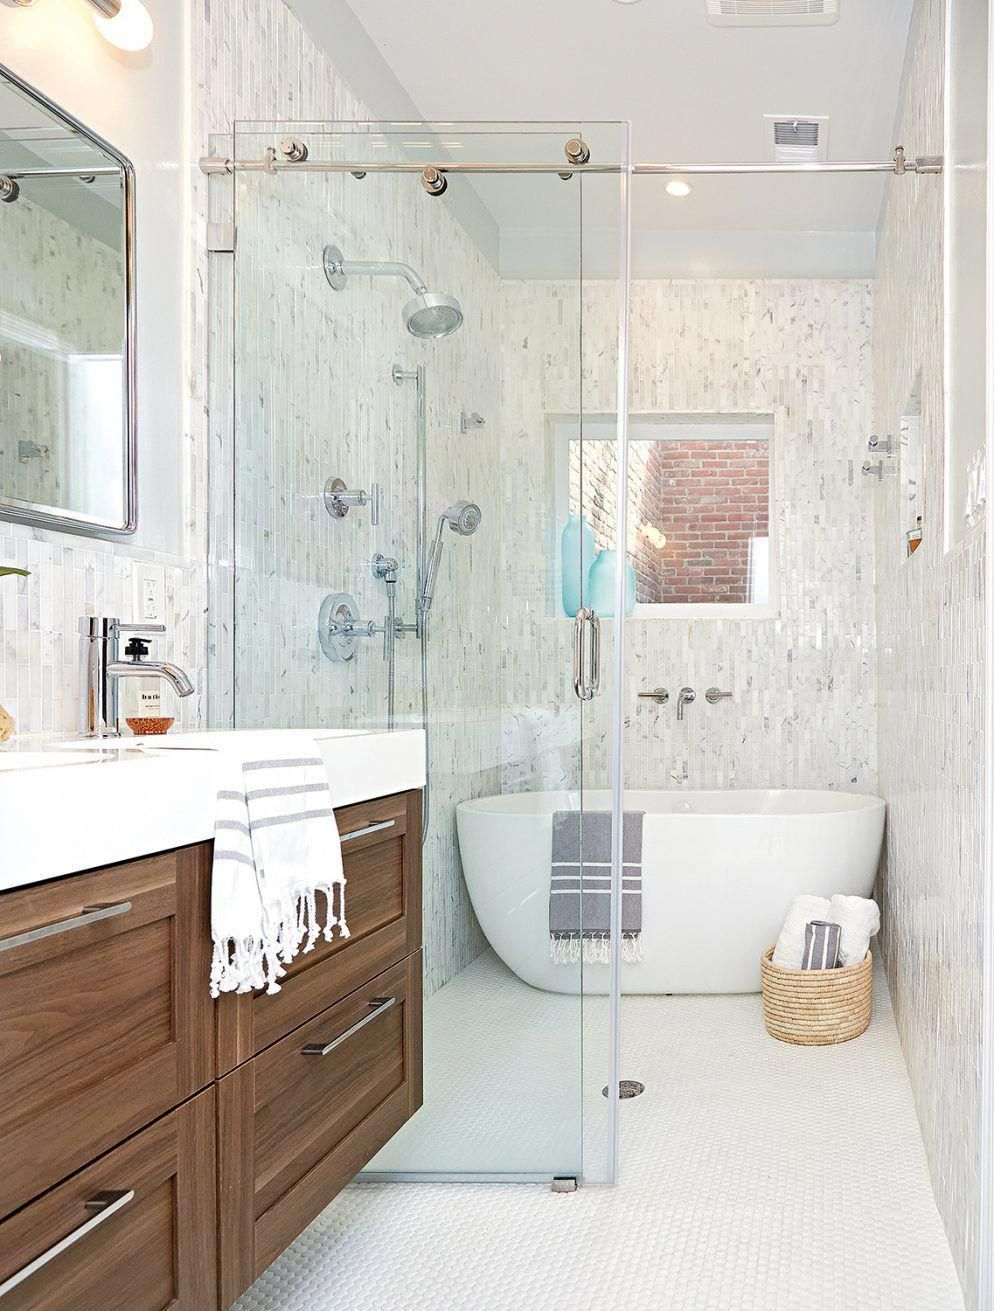 What Tiling For The Floor Of The Bathroom Bathroom Interior